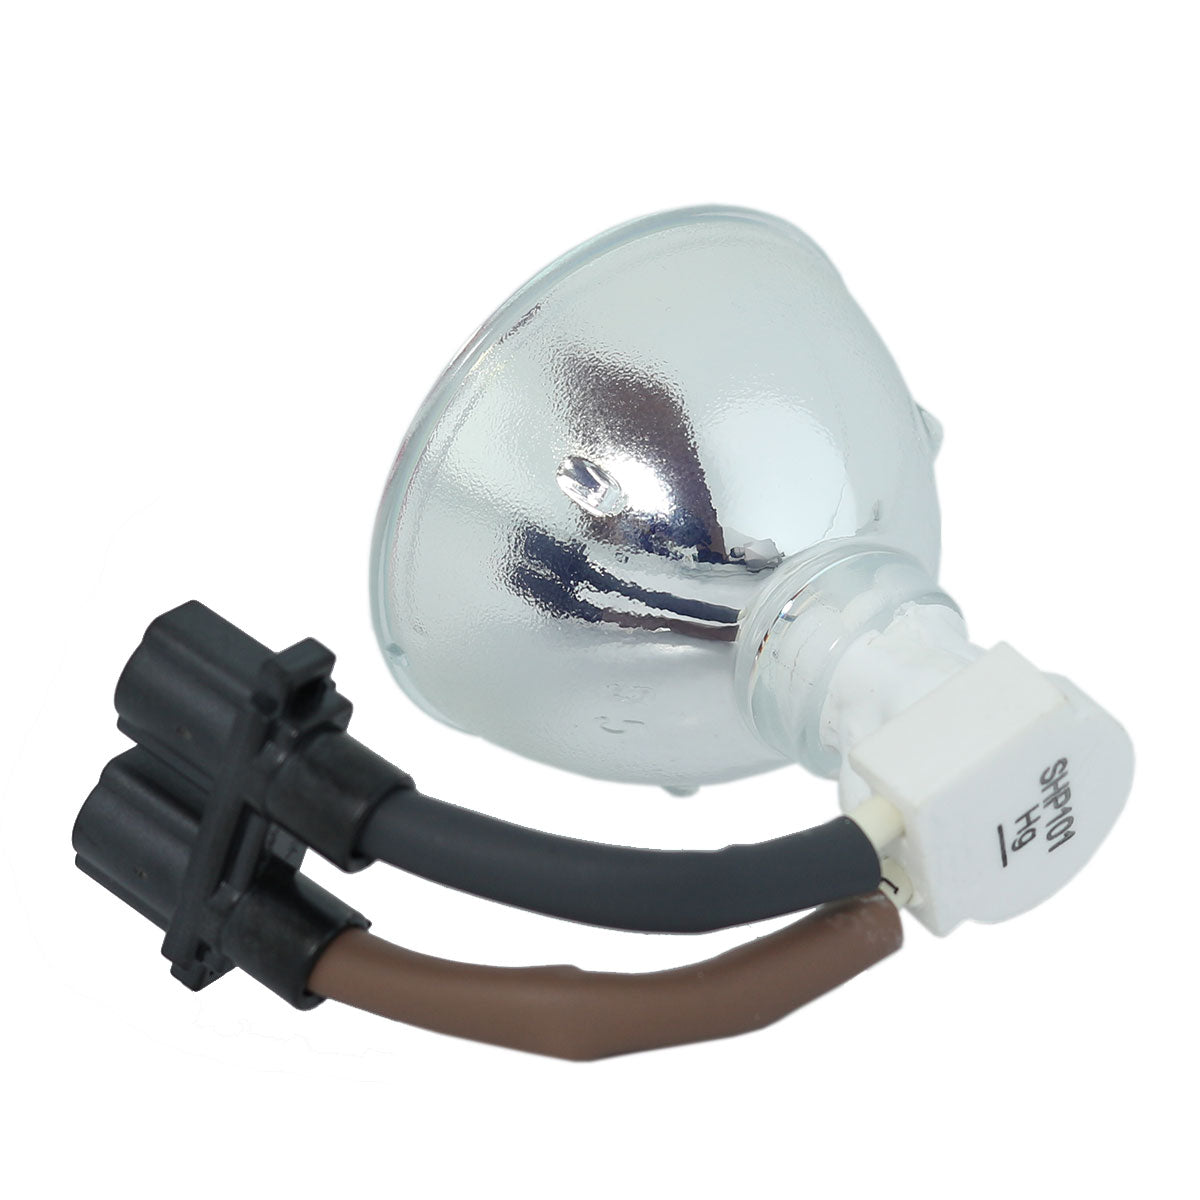 PLUS 000-063 Phoenix Projector Bare Lamp